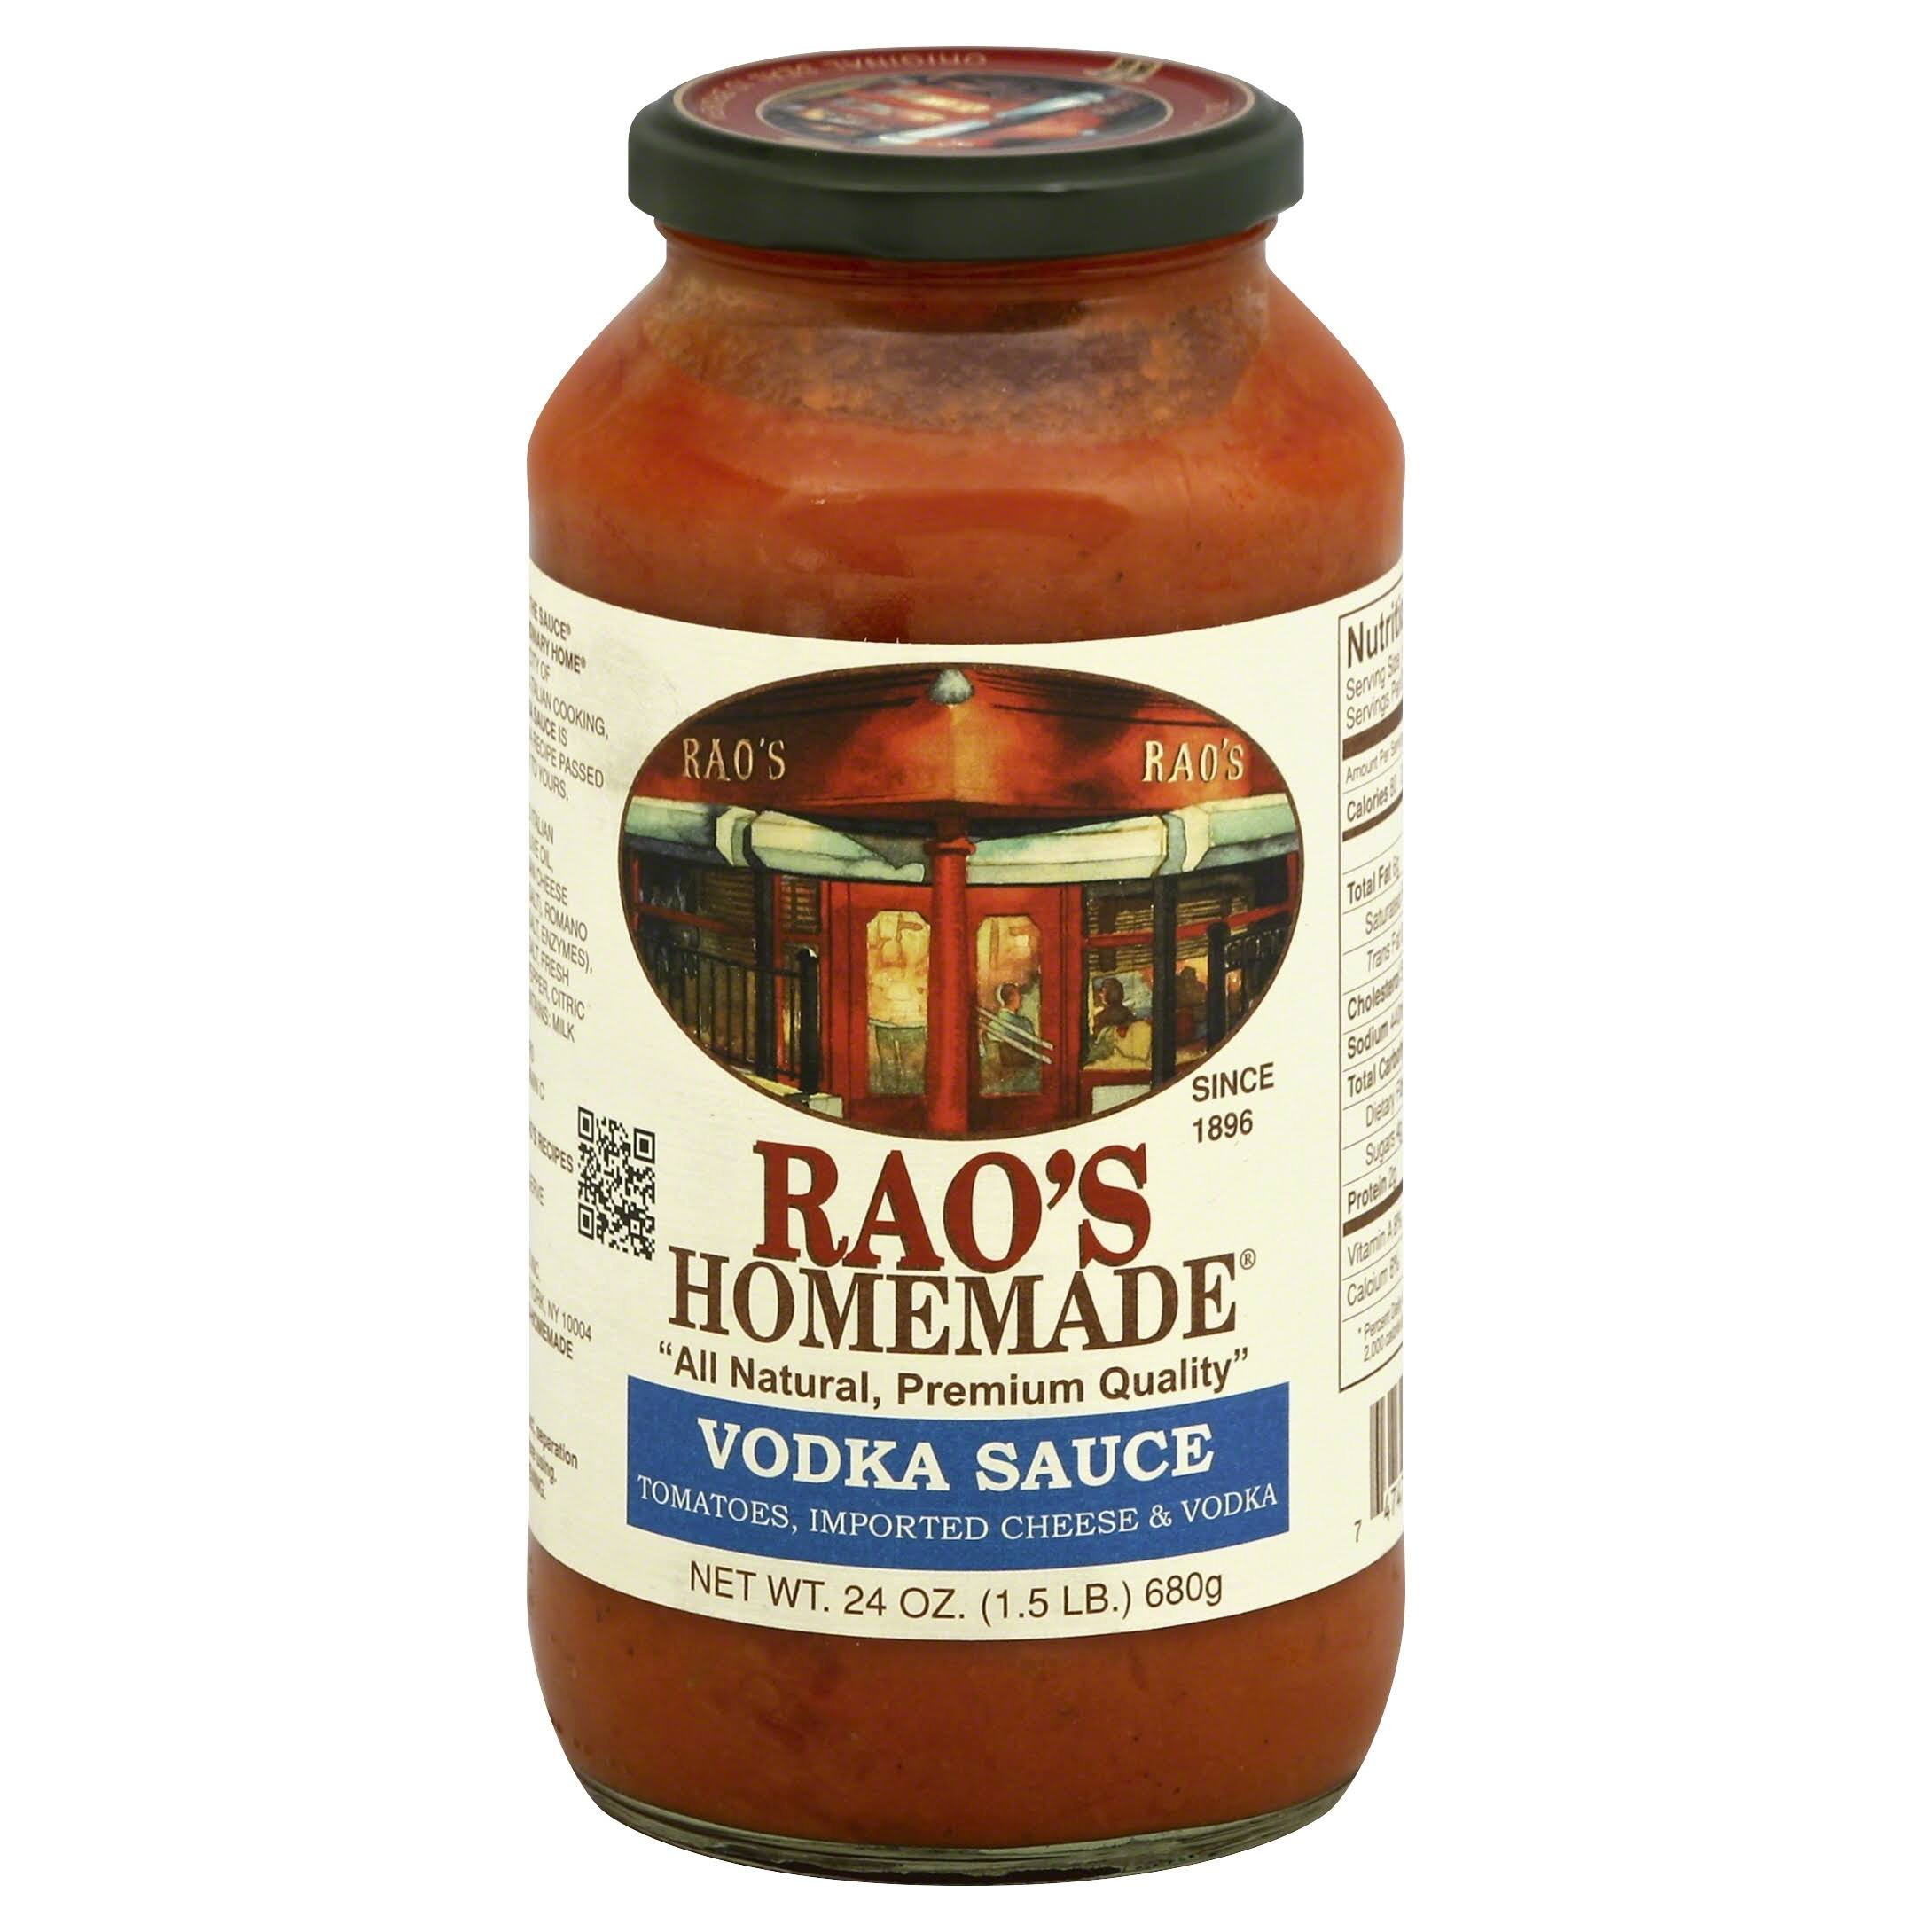 Rao's Homemade All Natural Vodka Sauce - 24 oz (12 Pack)